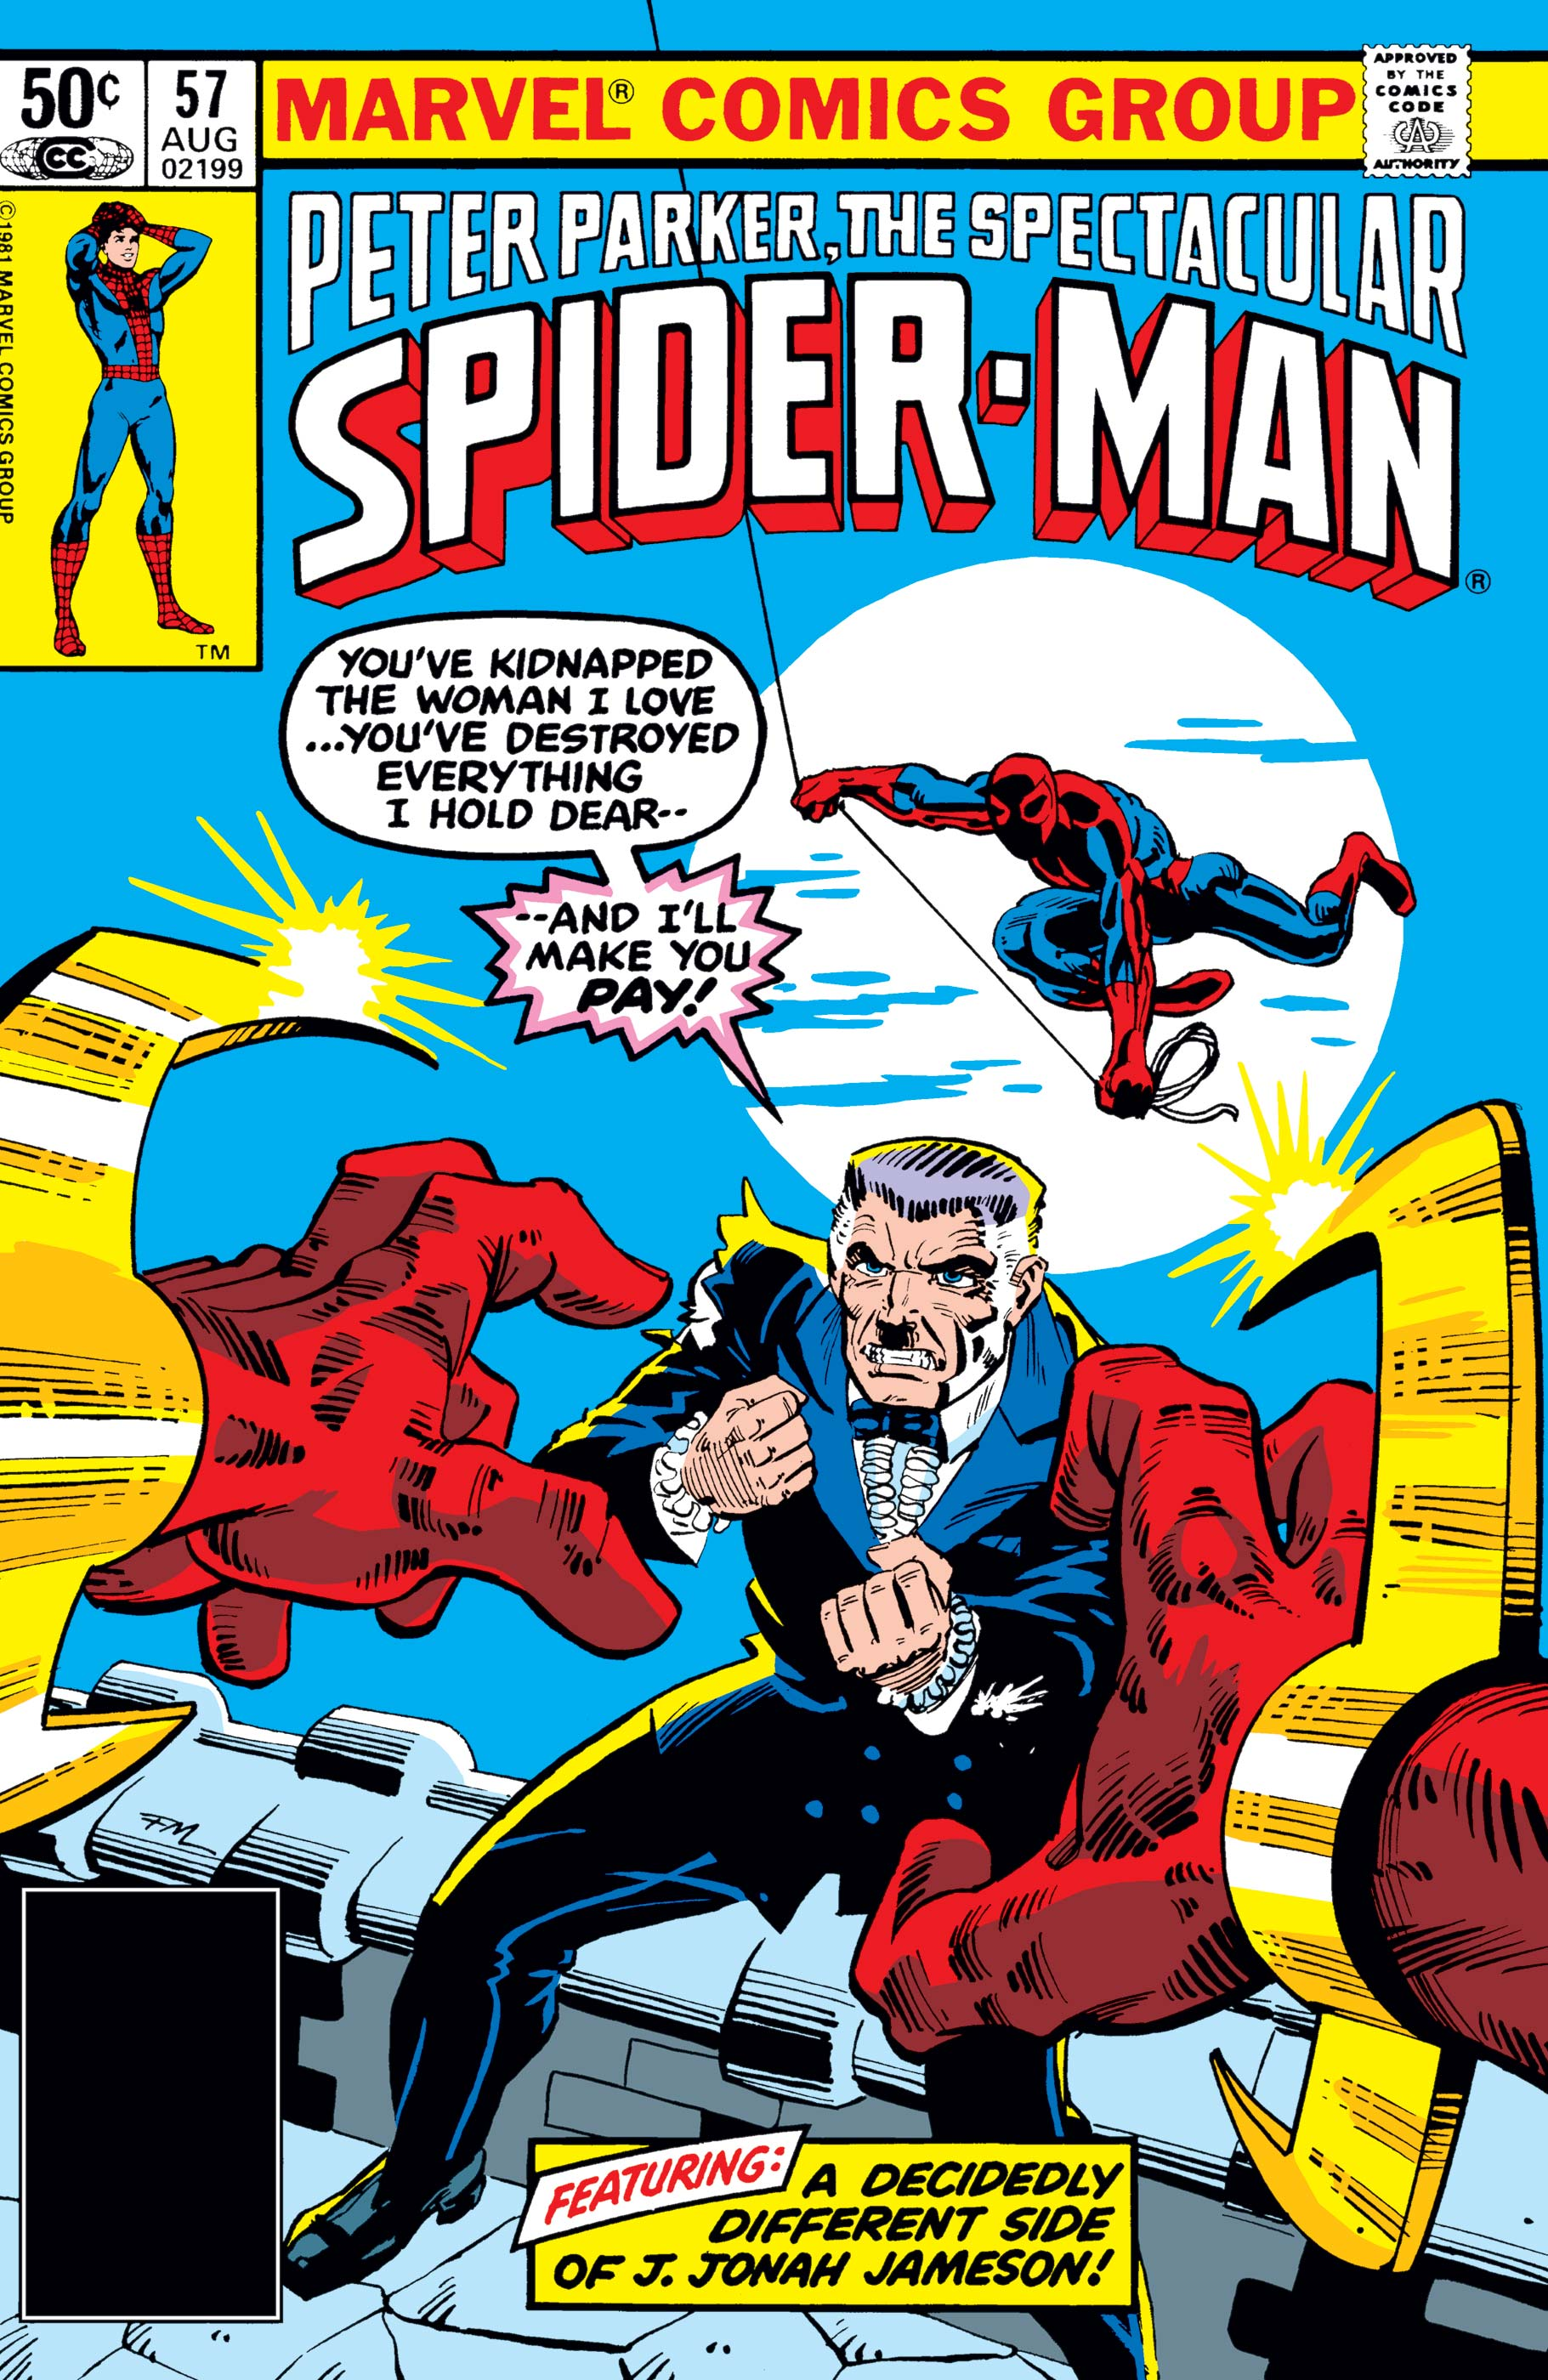 Peter Parker, the Spectacular Spider-Man (1976) #57